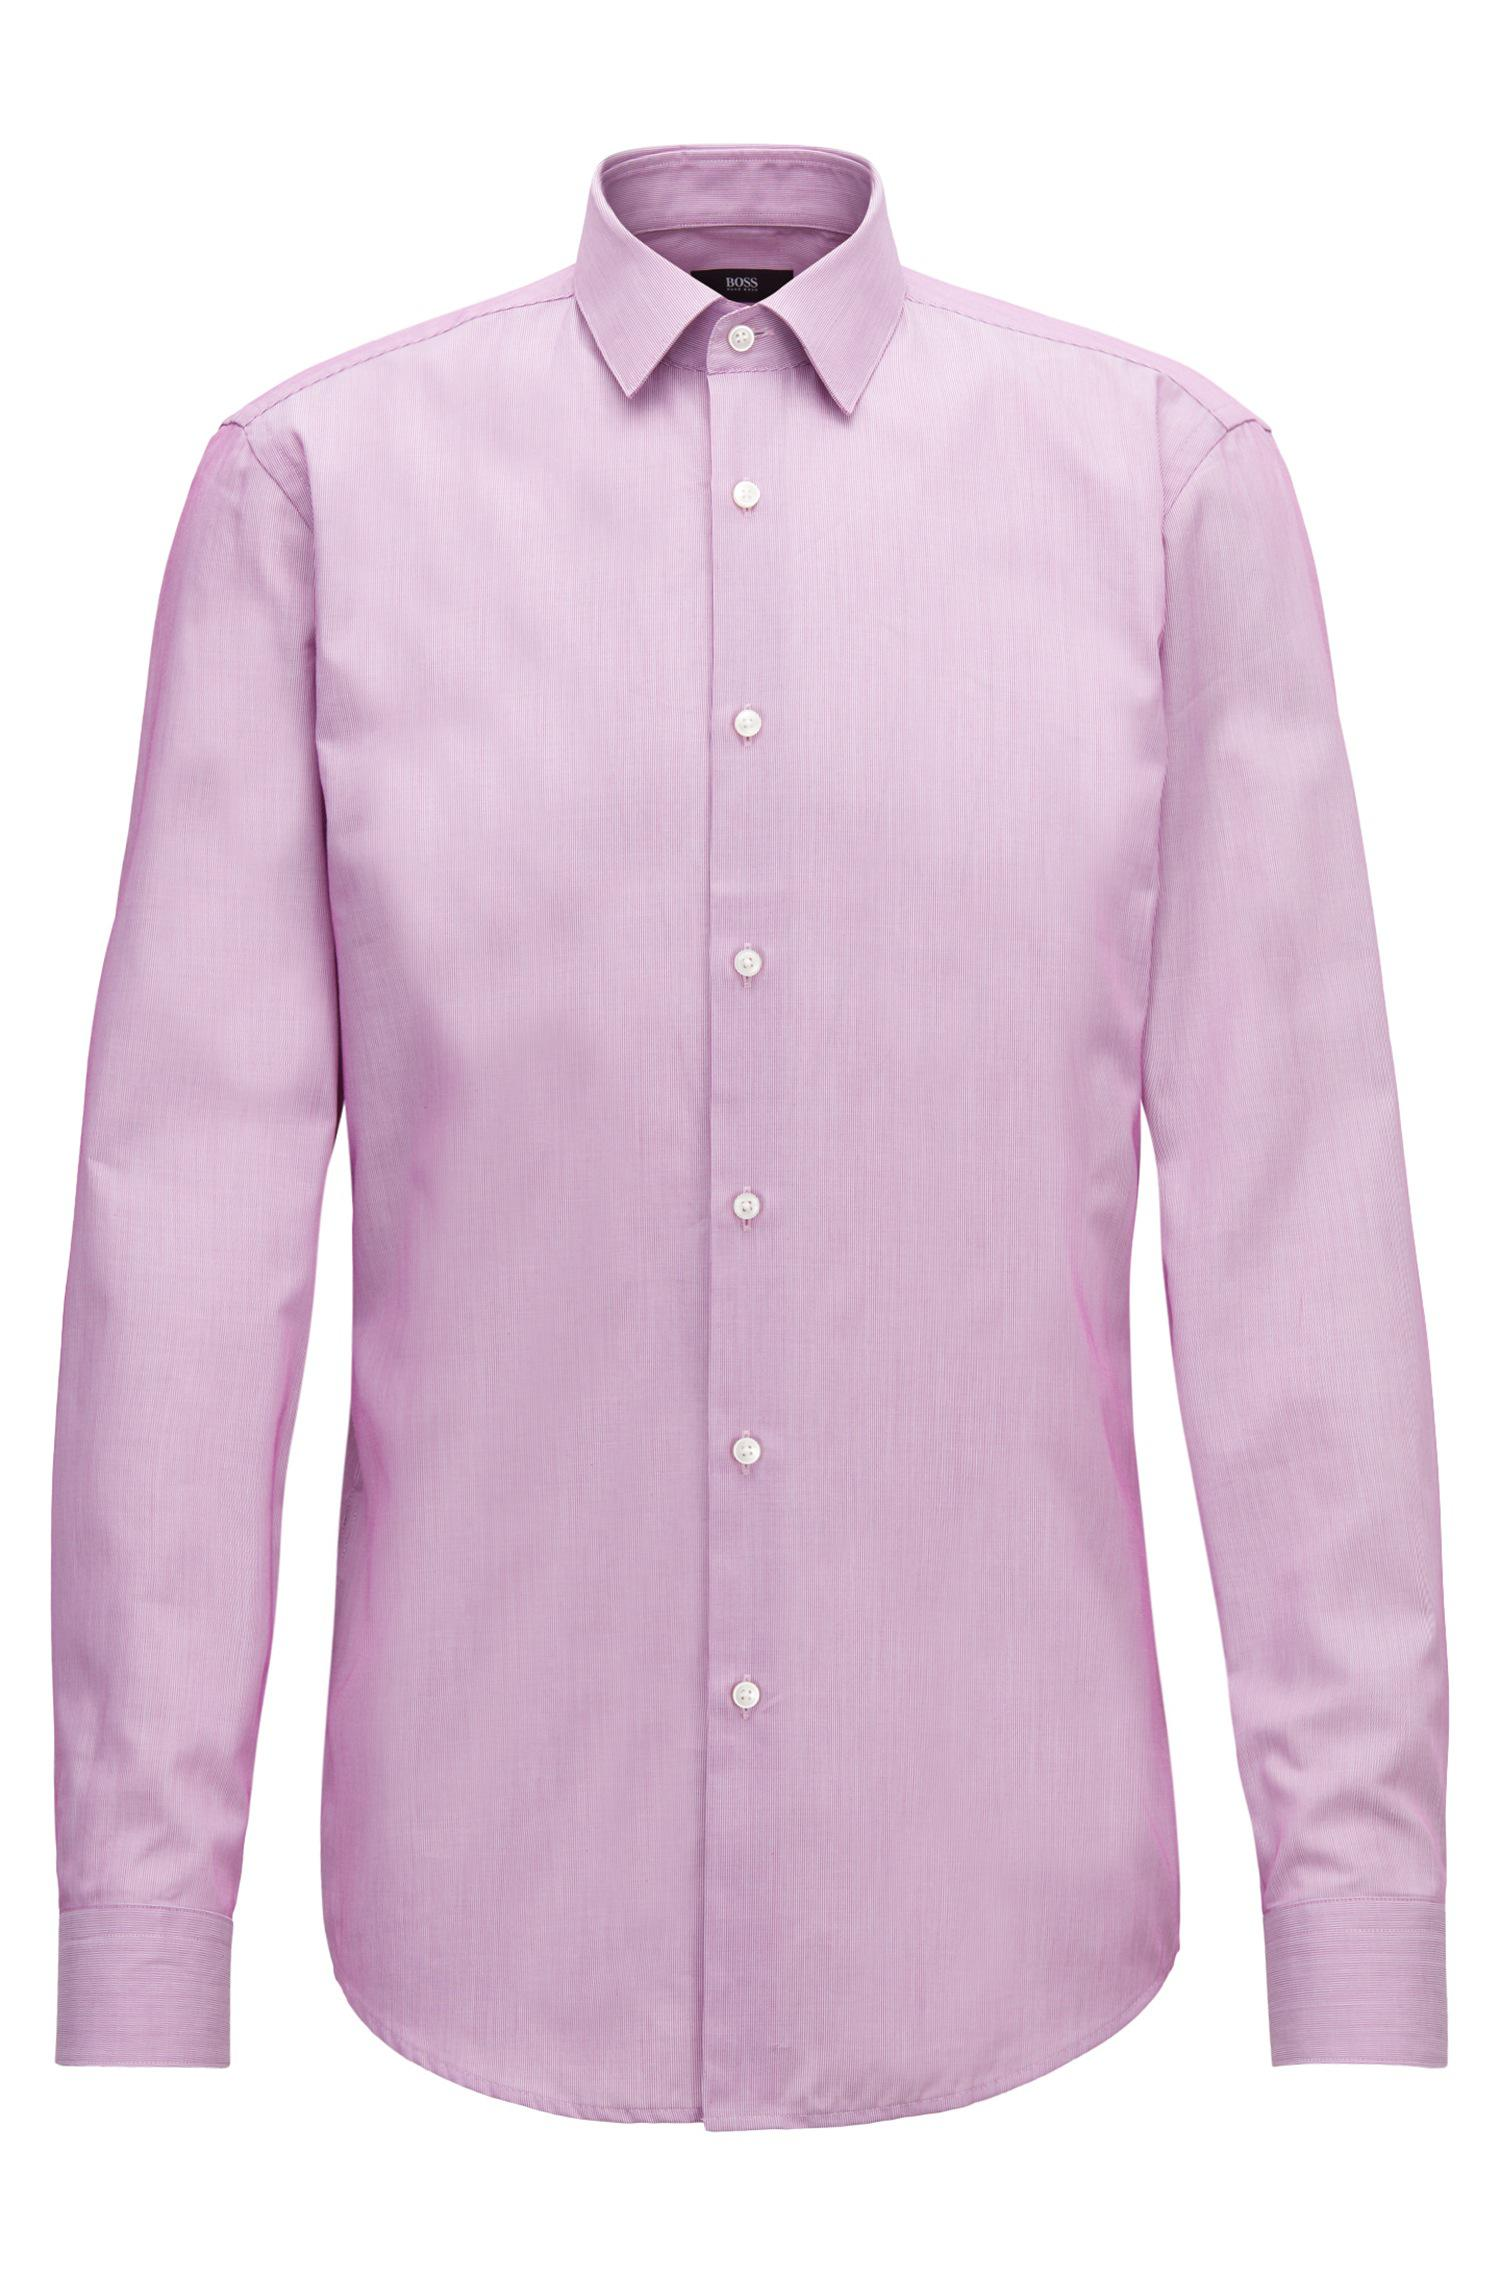 b61f7ab6 BOSS - Pink Slim-fit Shirt In Striped Dobby Cotton for Men - Lyst. View  fullscreen